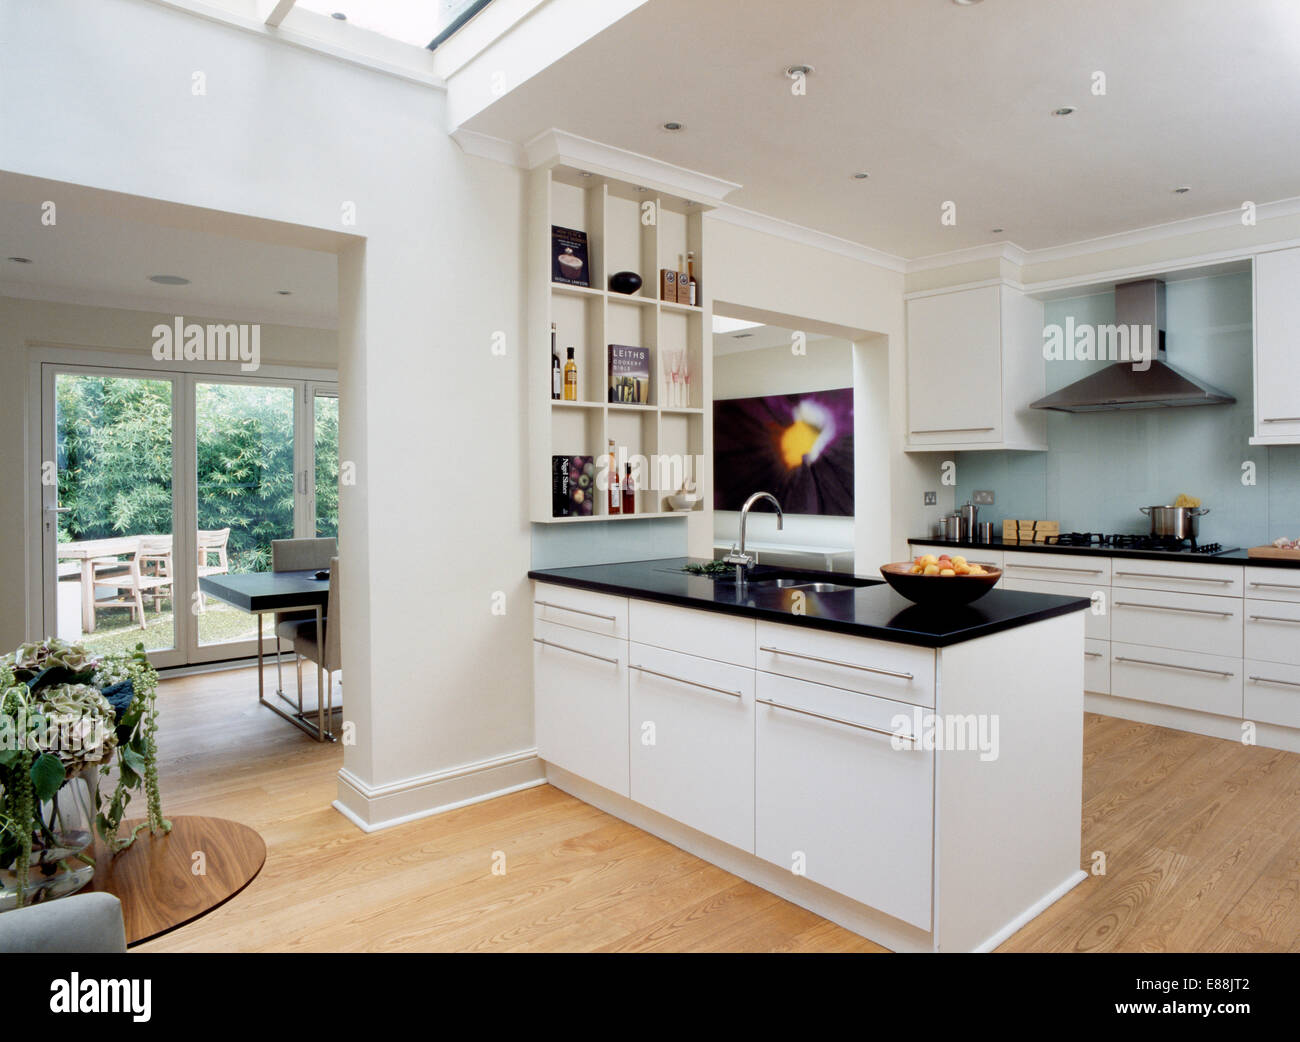 Black granite worktop on peninsular unit in modern white kitchen ...